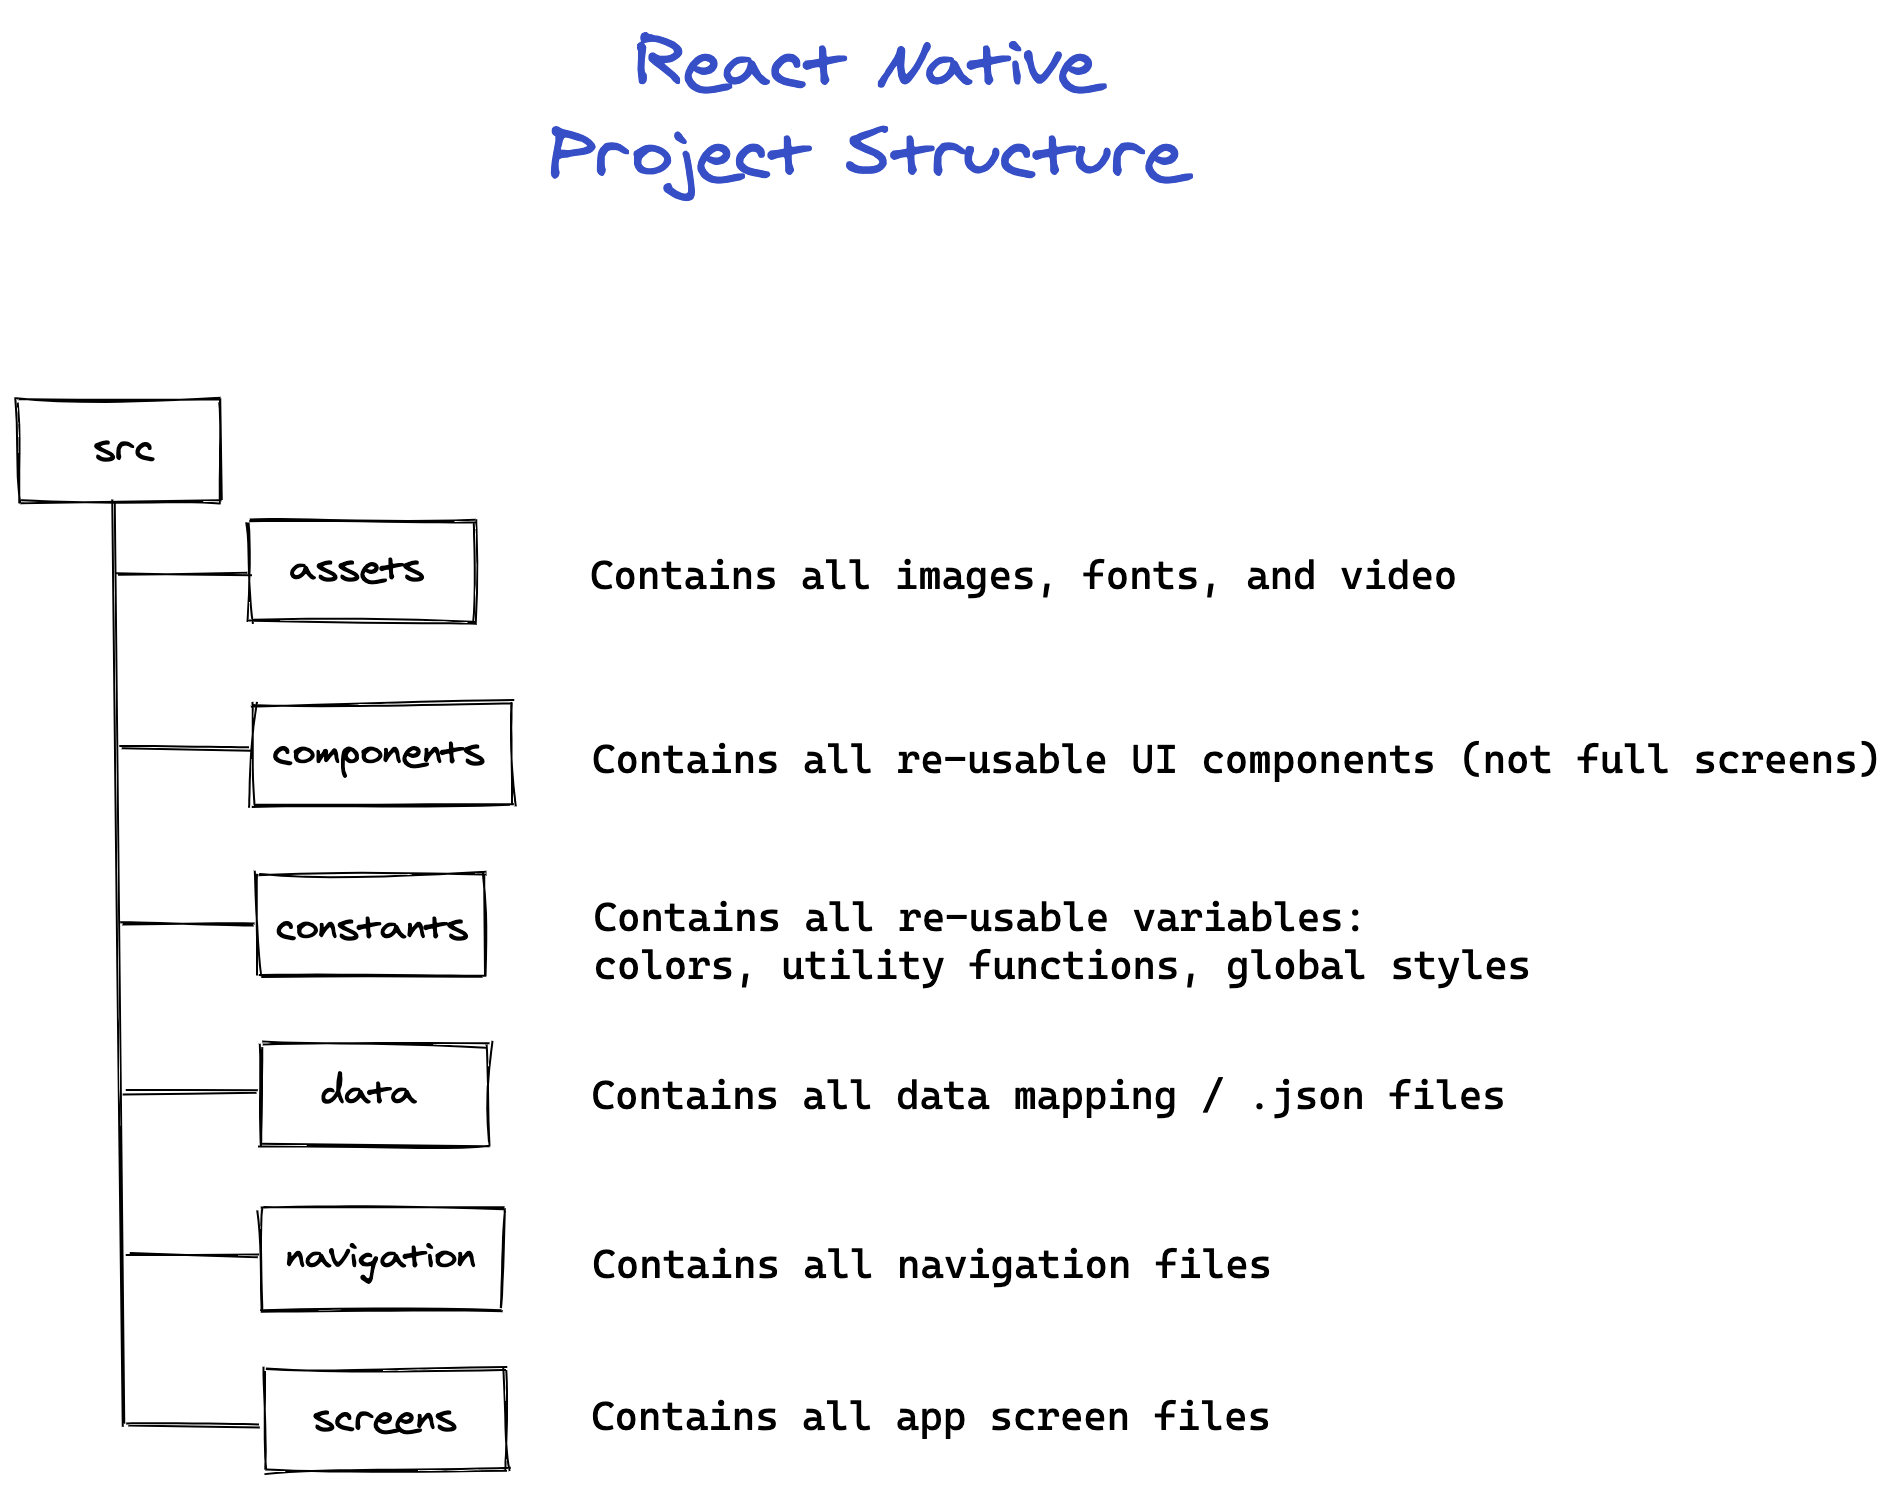 example of react native project structure